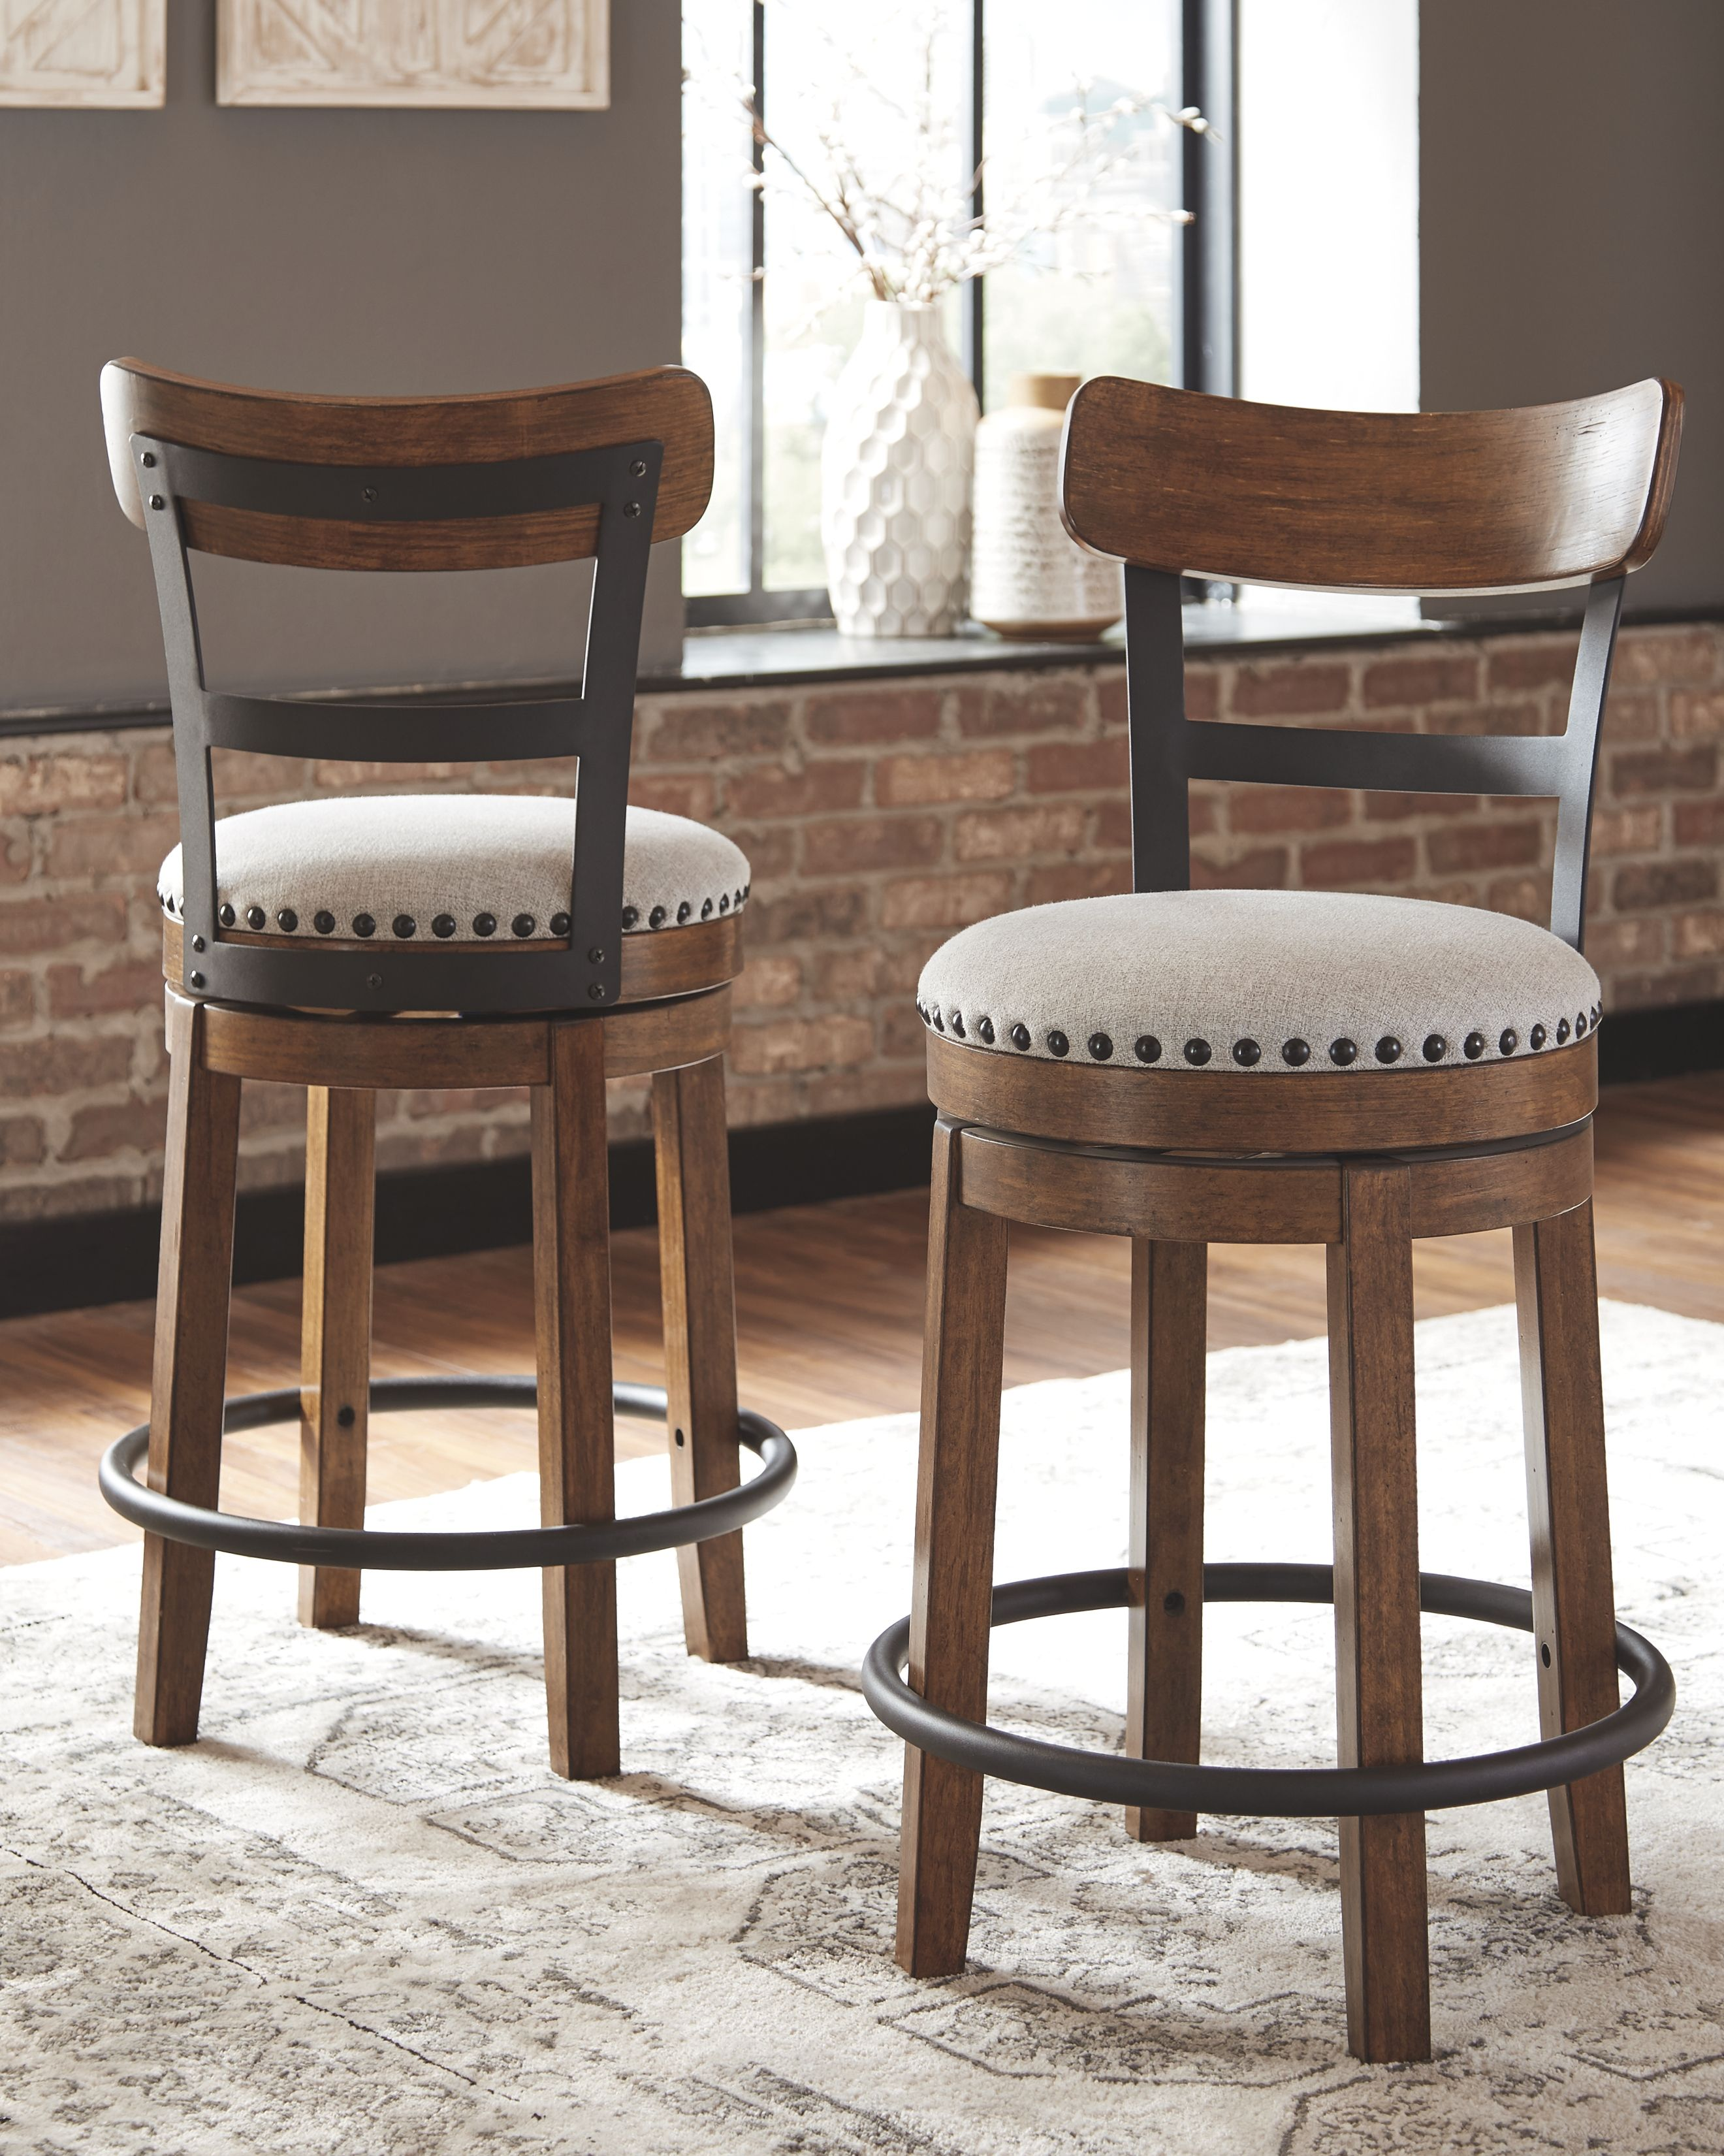 Remarkable Valebeck Counter Height Bar Stool Set Of 2 Brown In 2019 Onthecornerstone Fun Painted Chair Ideas Images Onthecornerstoneorg